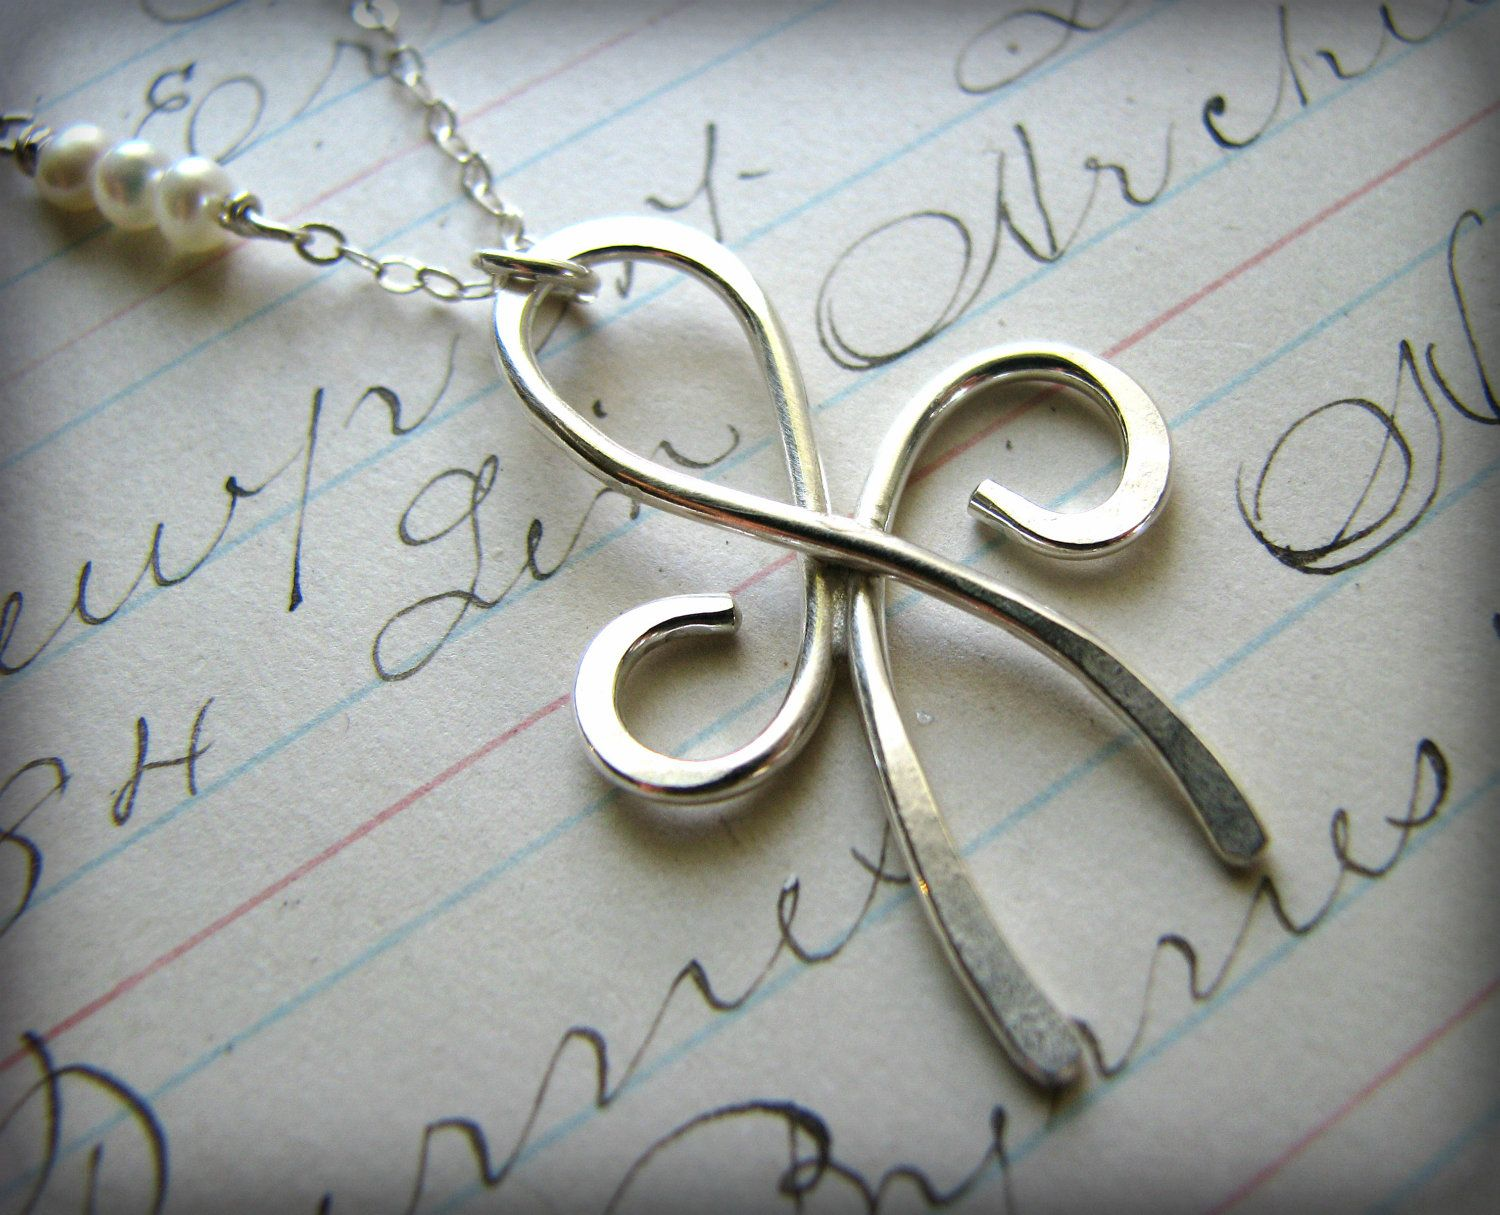 Google image result for httpimg0systatic00005201225 items similar to friendship necklace priority usps large size tattoo eternity sterling silver symbol best friends celebration gift on etsy buycottarizona